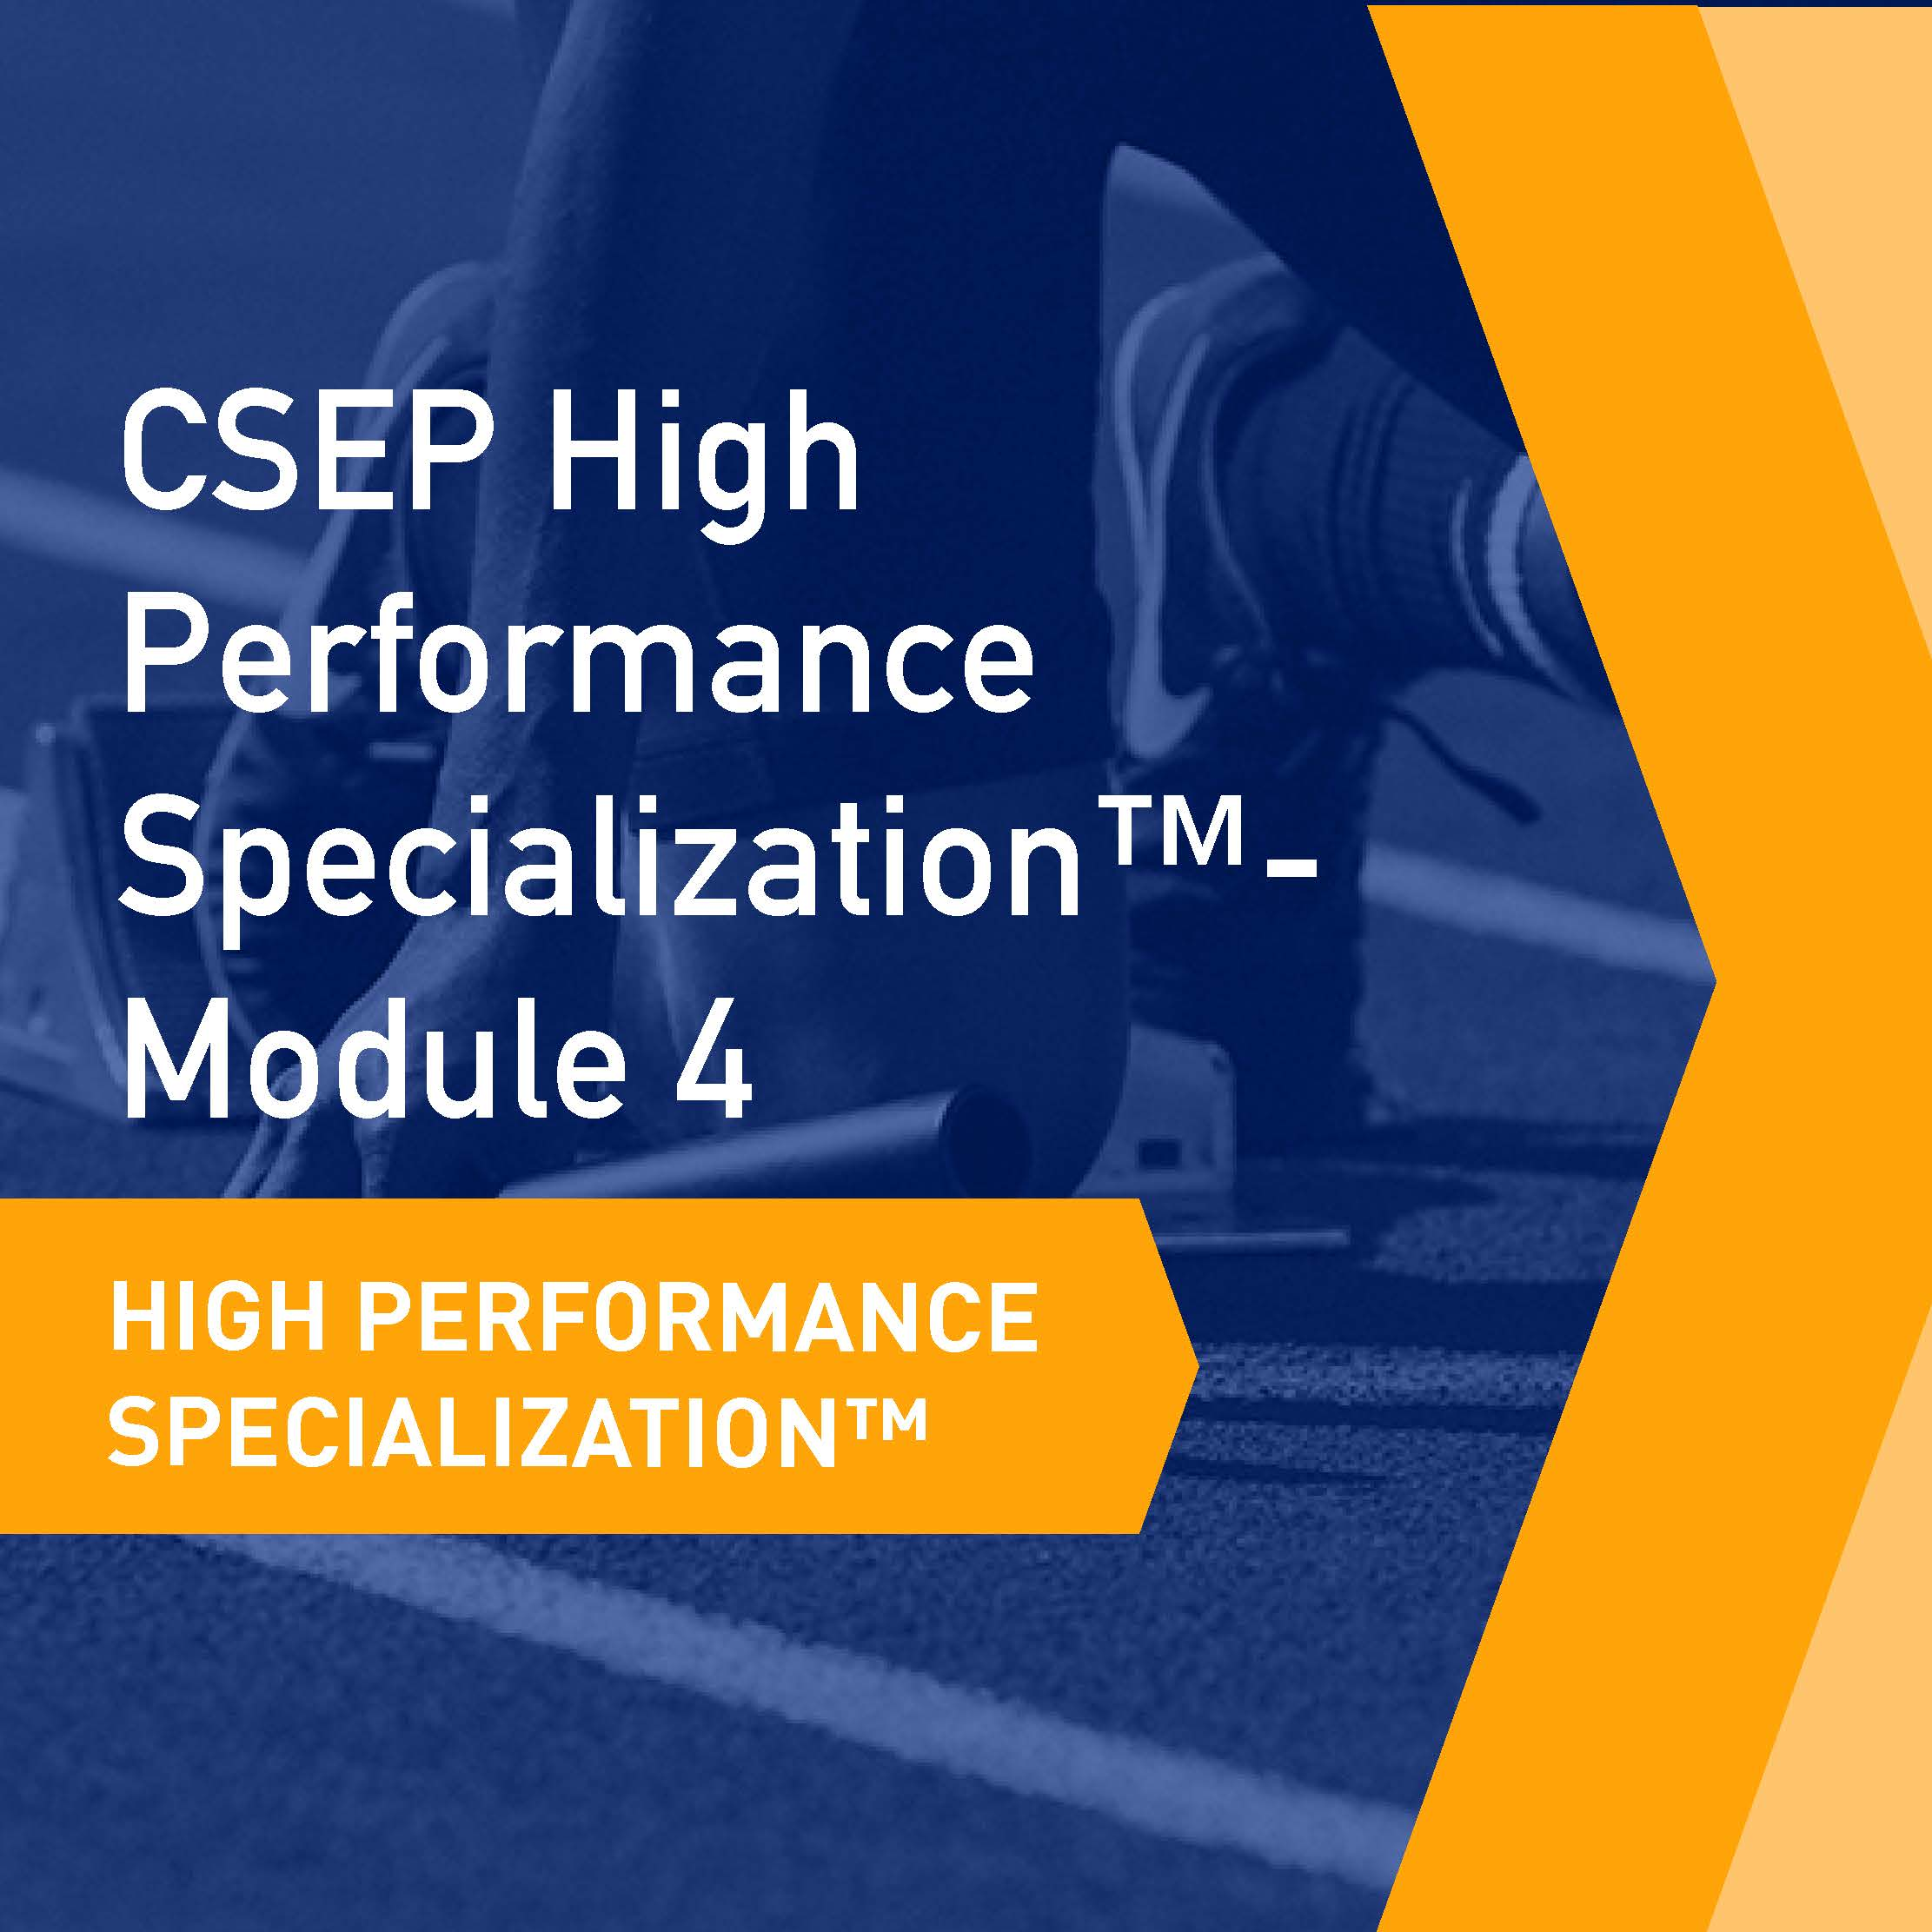 CSEP High Performance Specialization™ - Module 4: Sport Nutrition